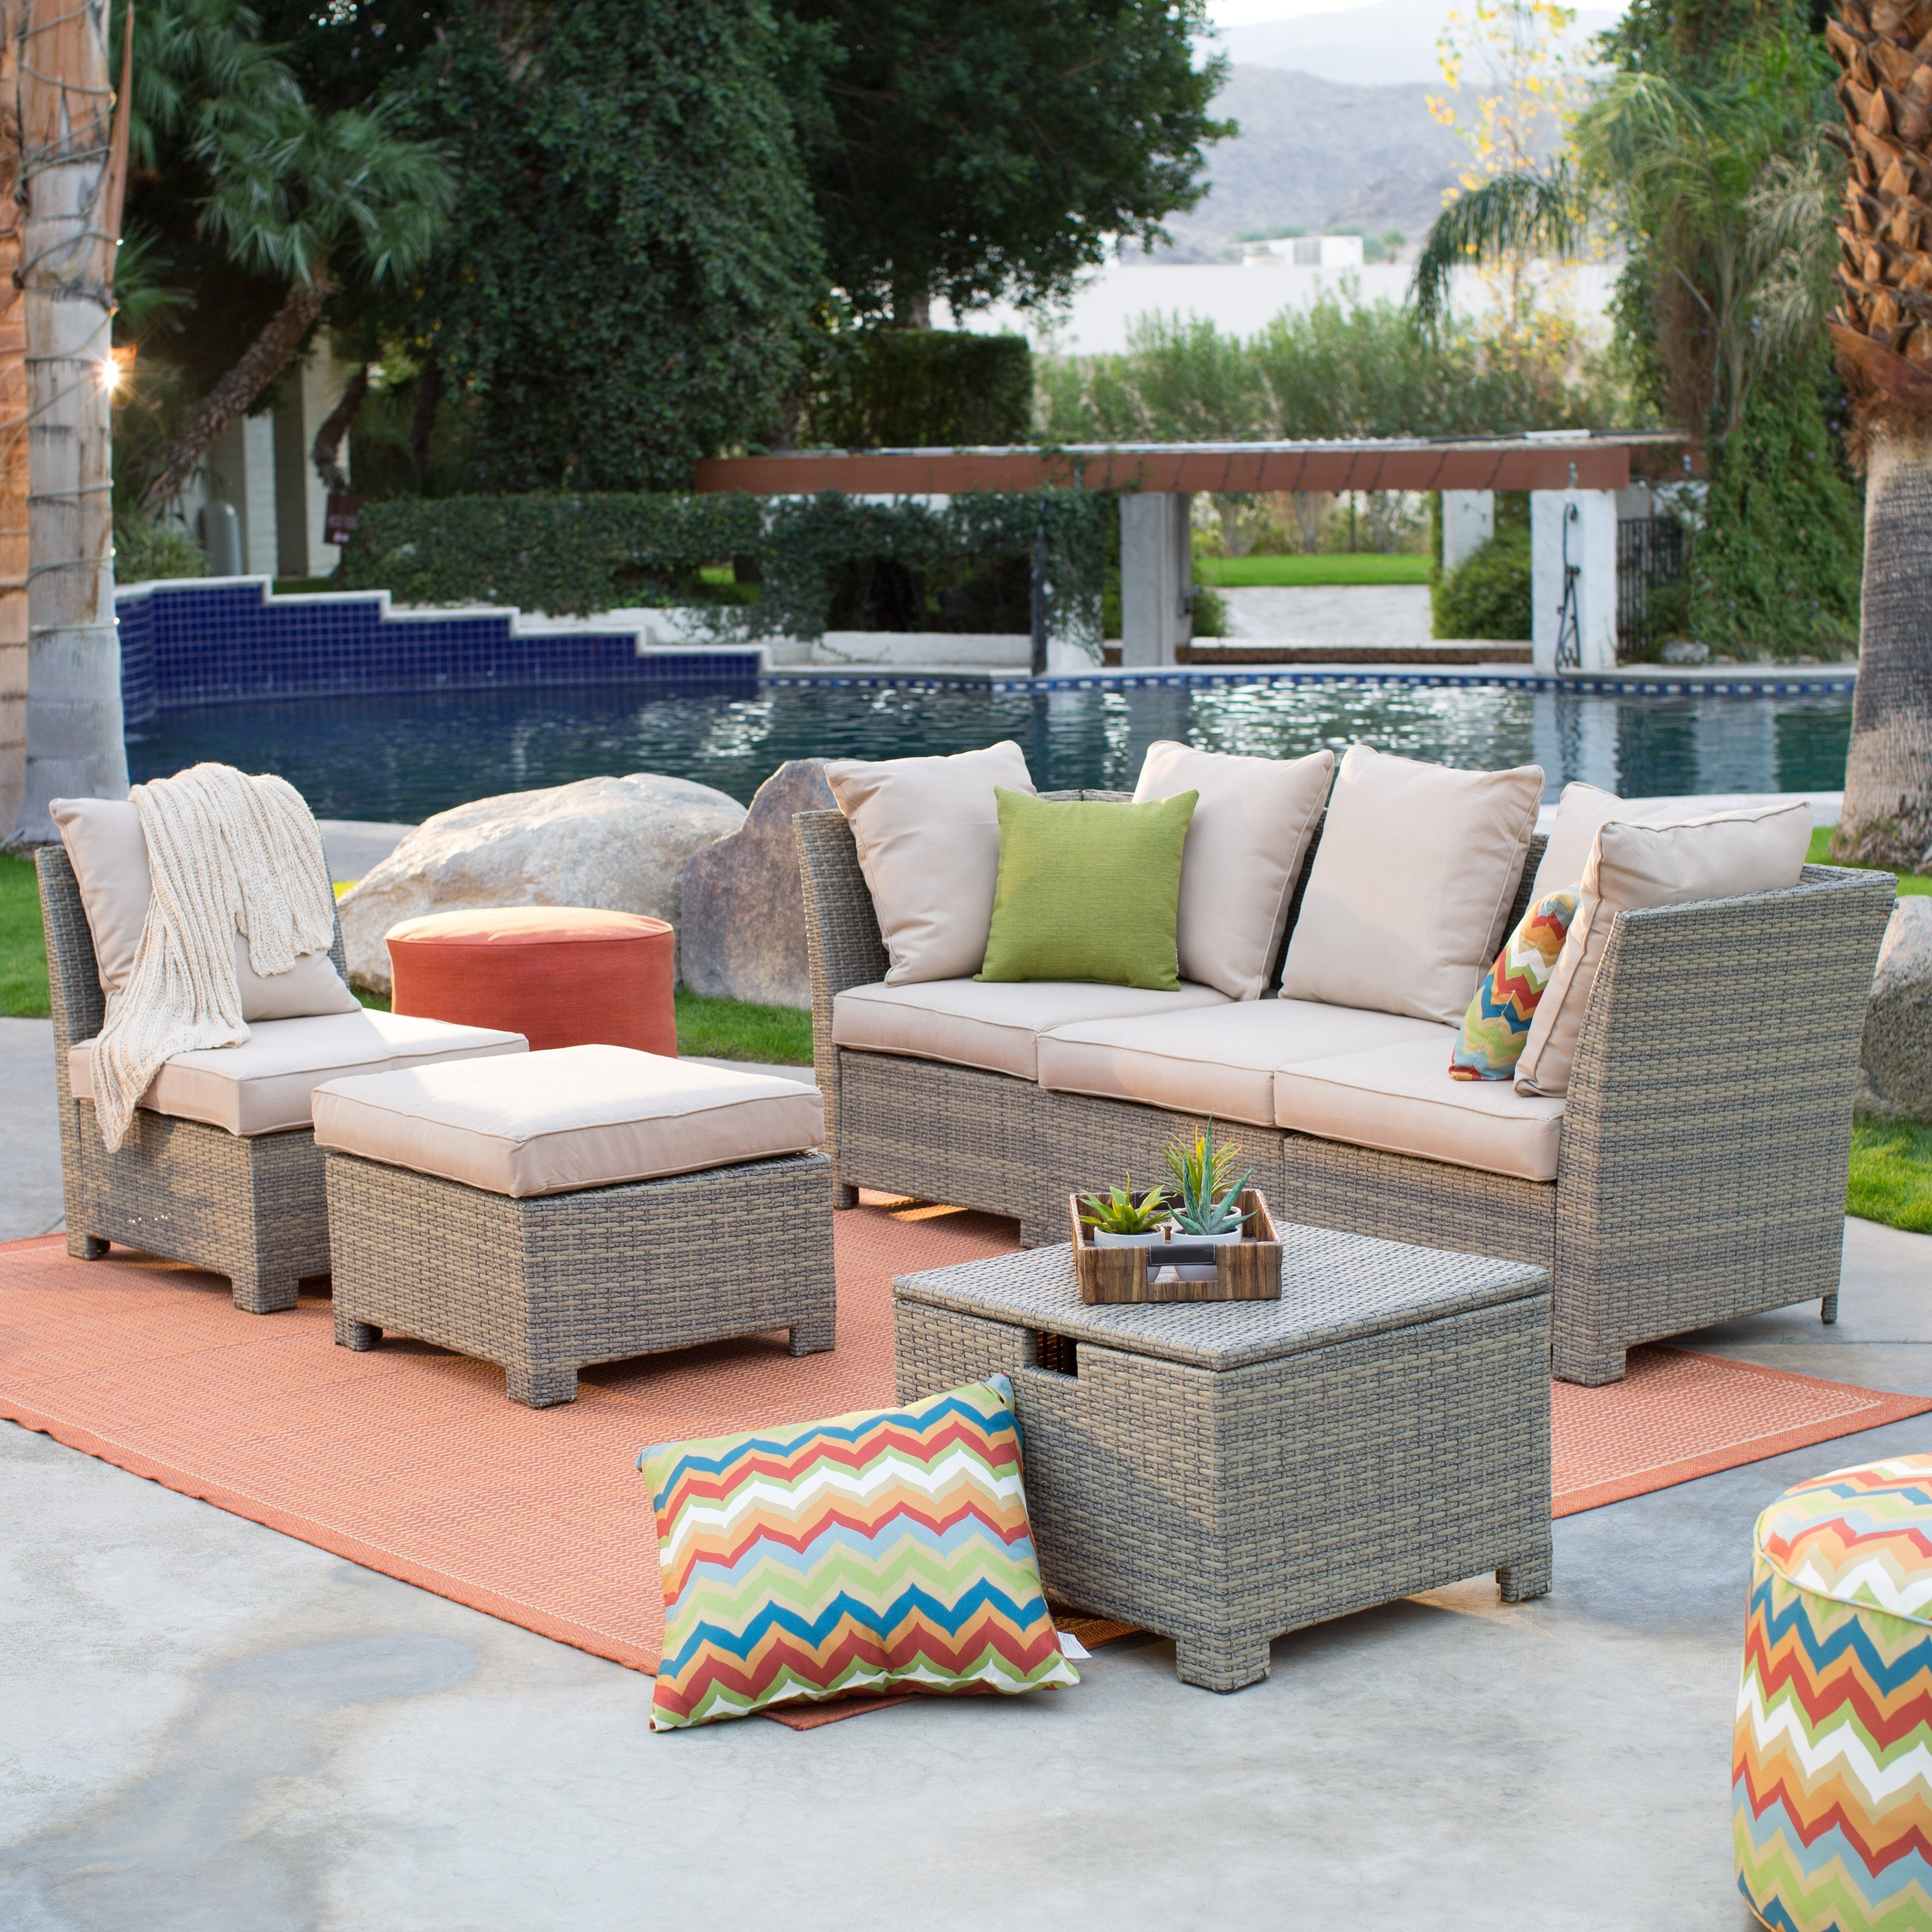 Patio : Kroger Patio Furniture Kroger Outdoor Furniture Throughout Well Known Patio Conversation Sets With Swivel Chairs (View 11 of 15)